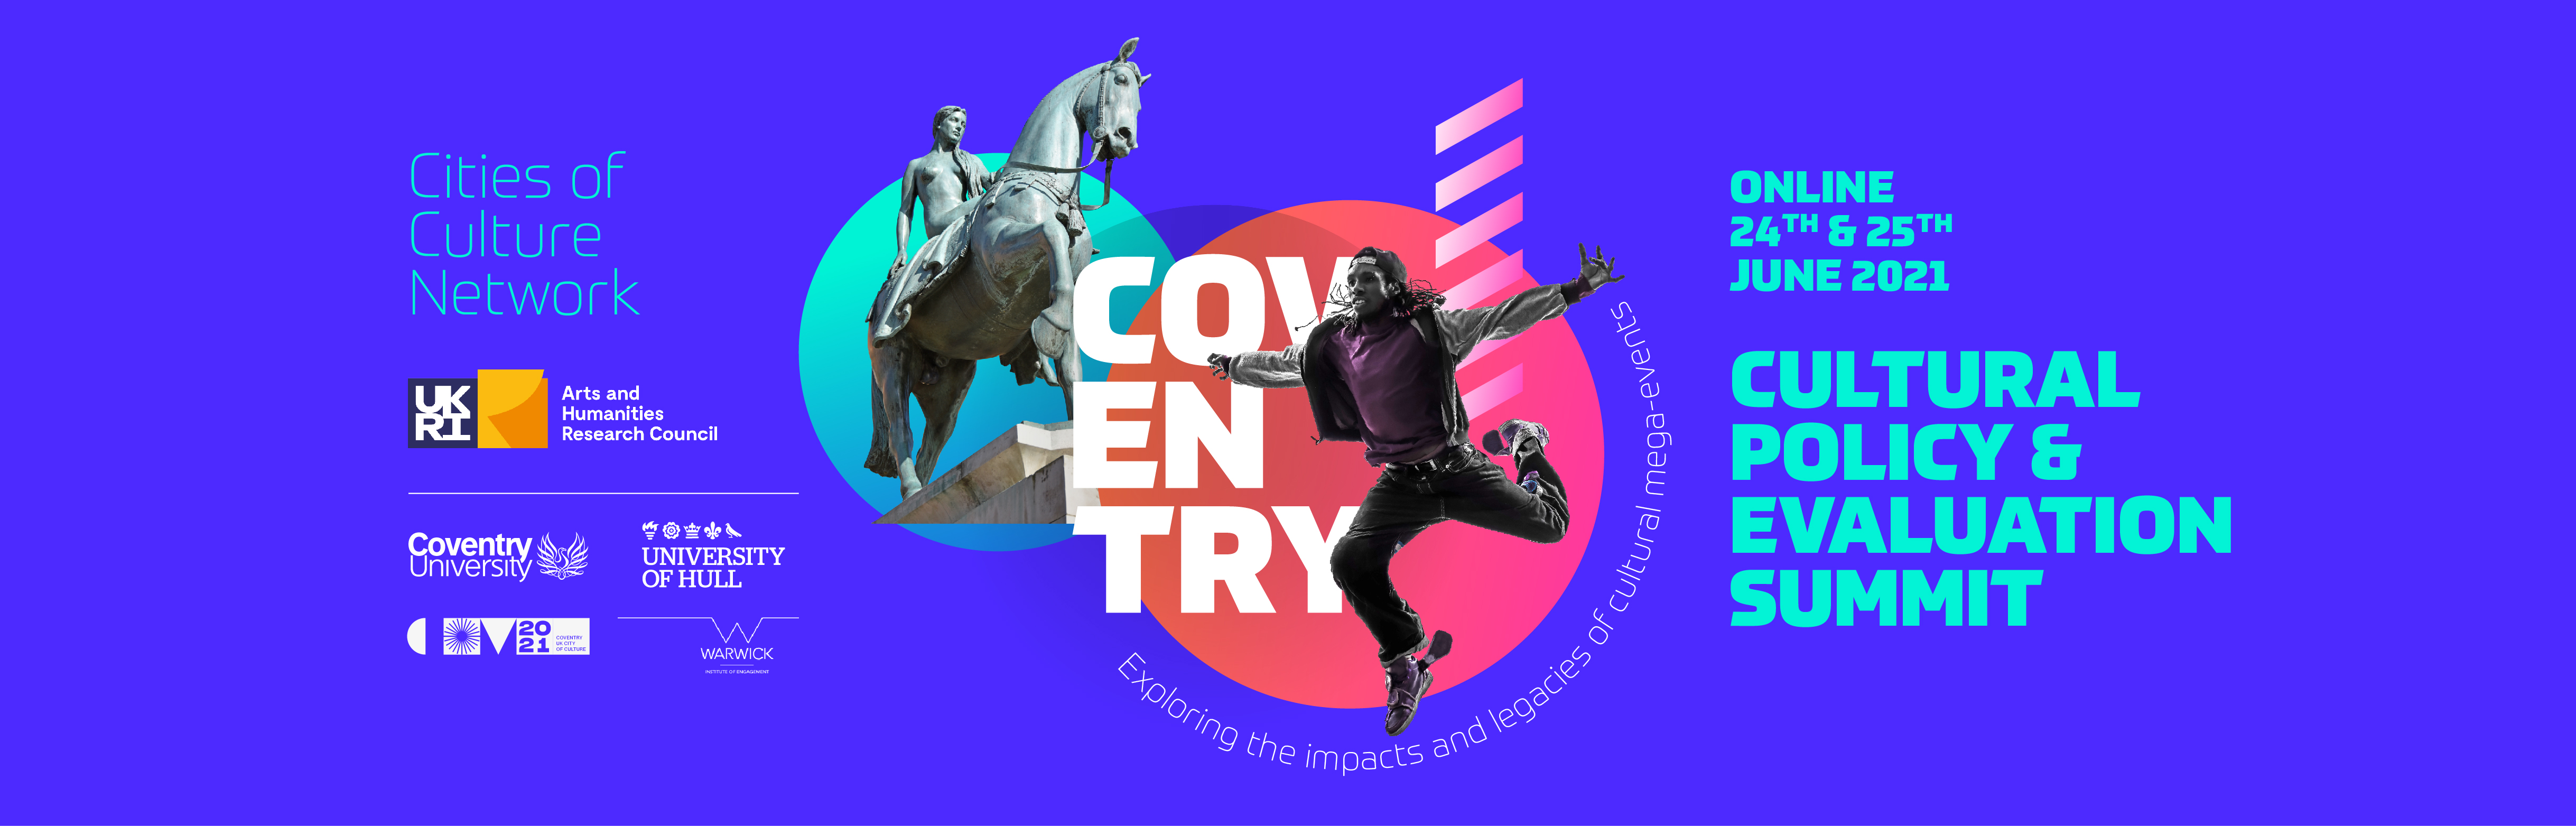 The AHRC Cities of Culture Network - The Coventry Cultural Policy and Evaluation Summit - 24th and 25th June 2021